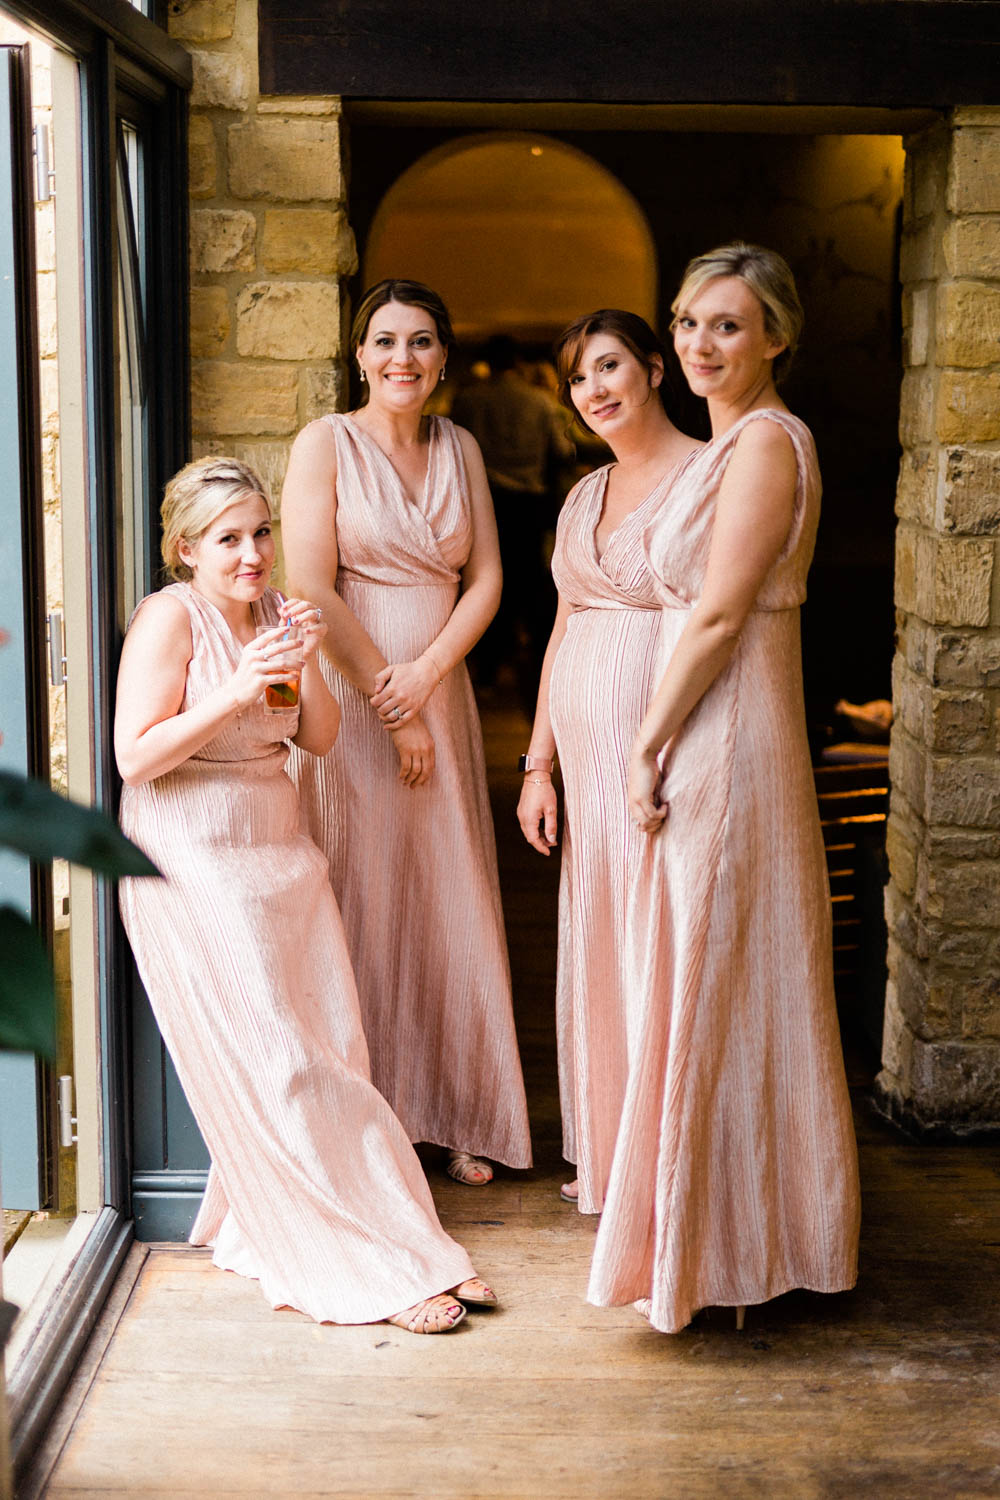 Special-Day-Photography-The-Manor-House-Hotel-Moreton-in-Marsh-Moreton-In-Marsh-Summer-Wedding-The-bridemaids-relax-during-wedding.jpg